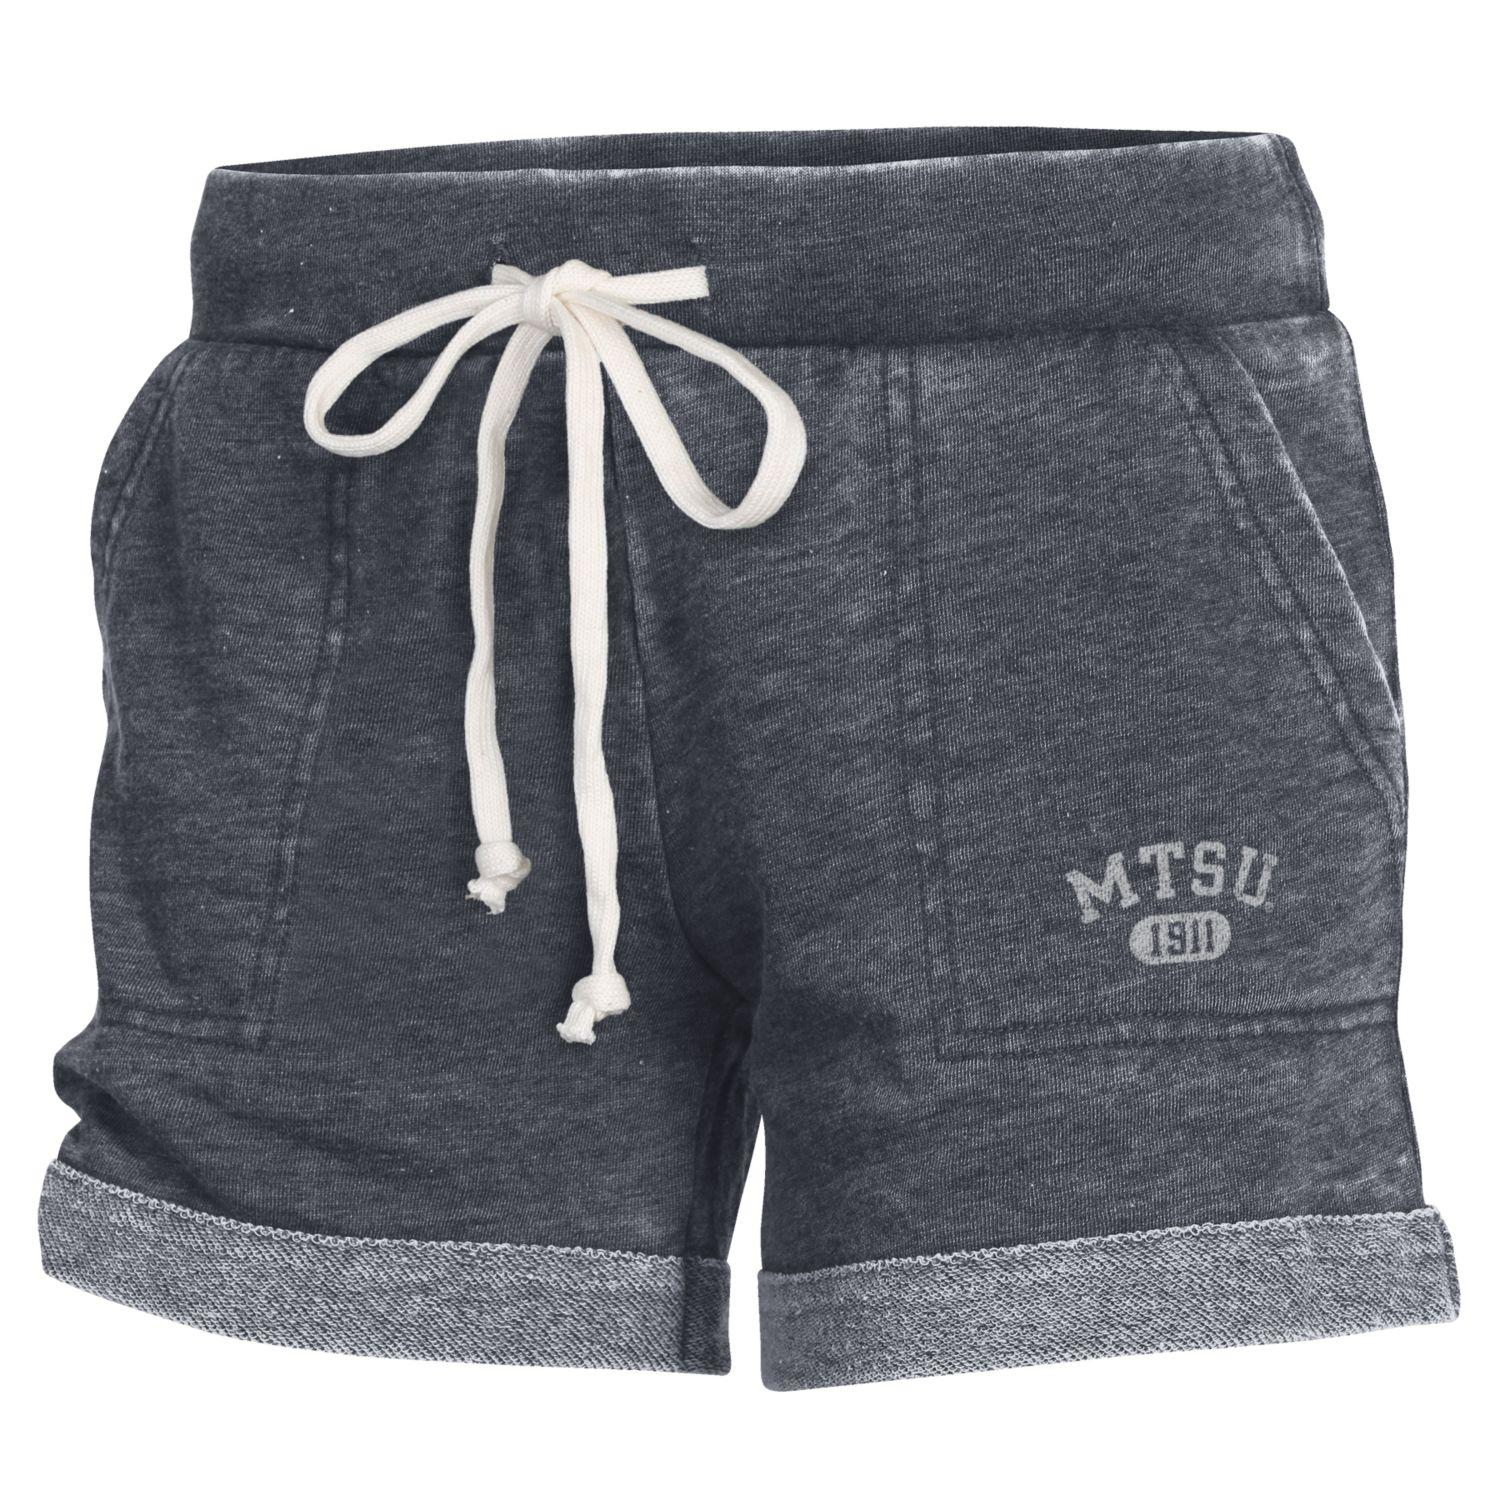 MTSU 1911 Women's Lounge Shorts